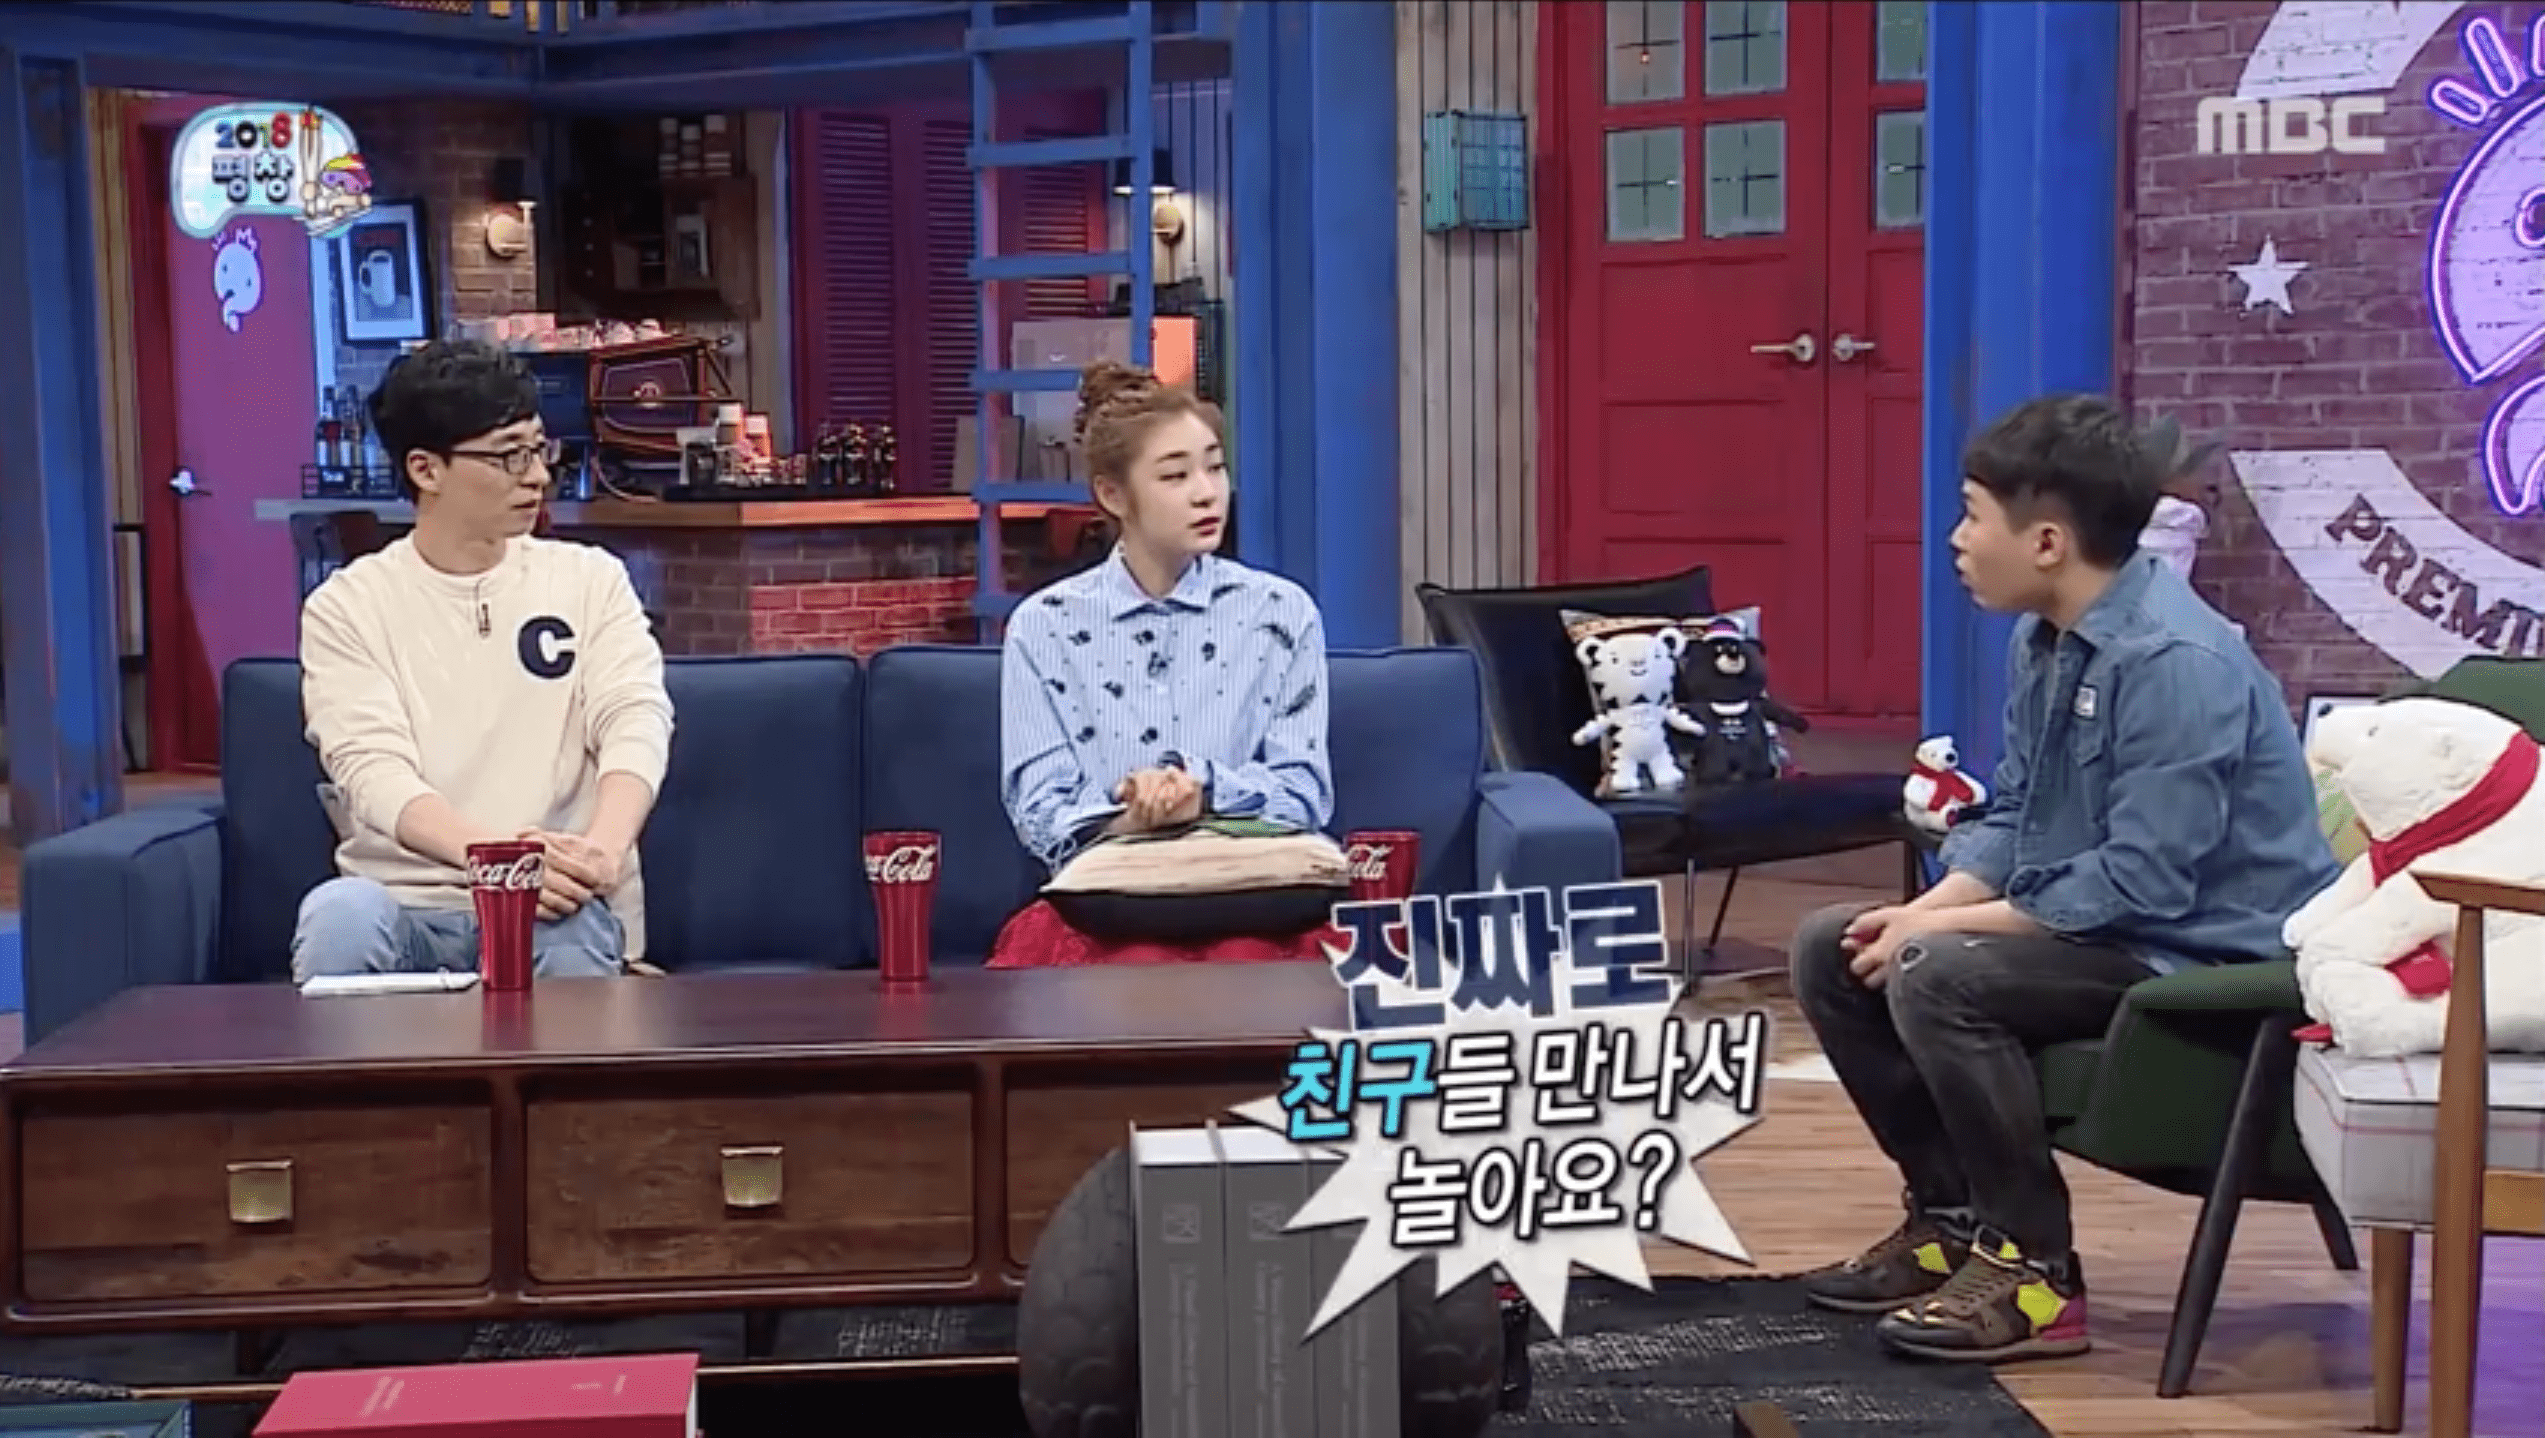 Kim Yuna Renders Yang Se Hyung Starstruck With Her Long-Awaited Appearance On Infinite Challenge